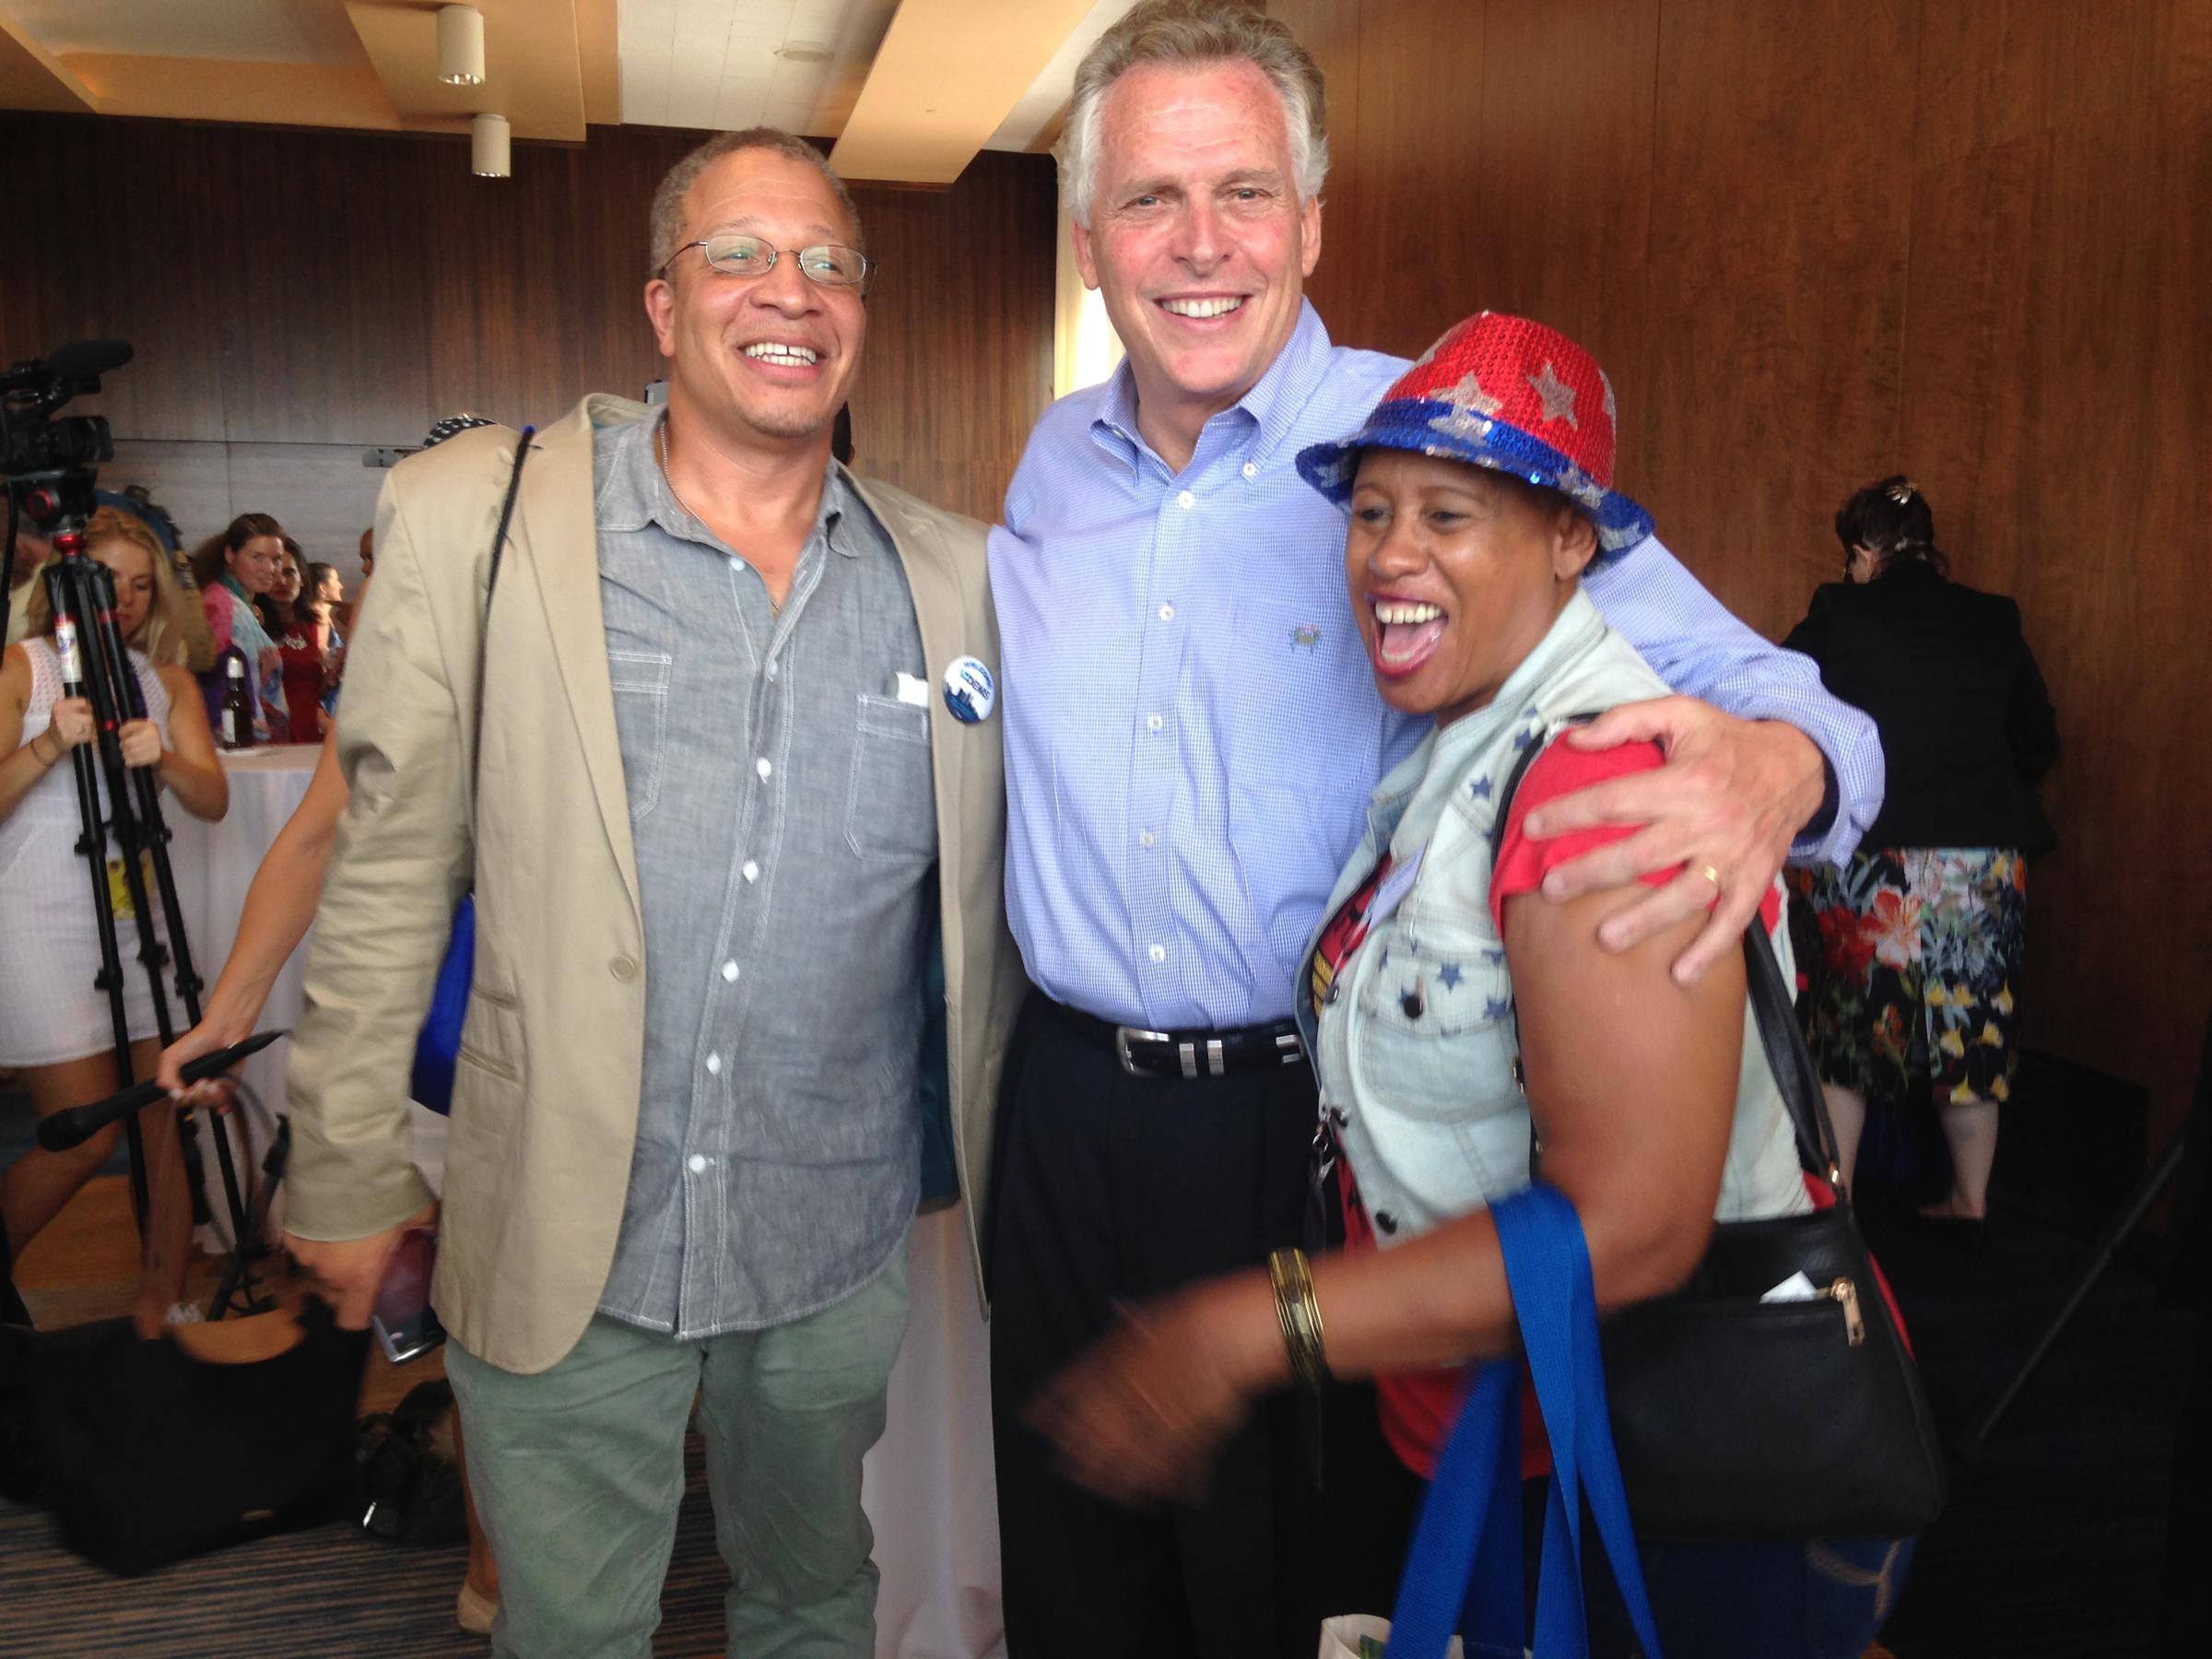 After ruling, McAuliffe moves to restore rights individually